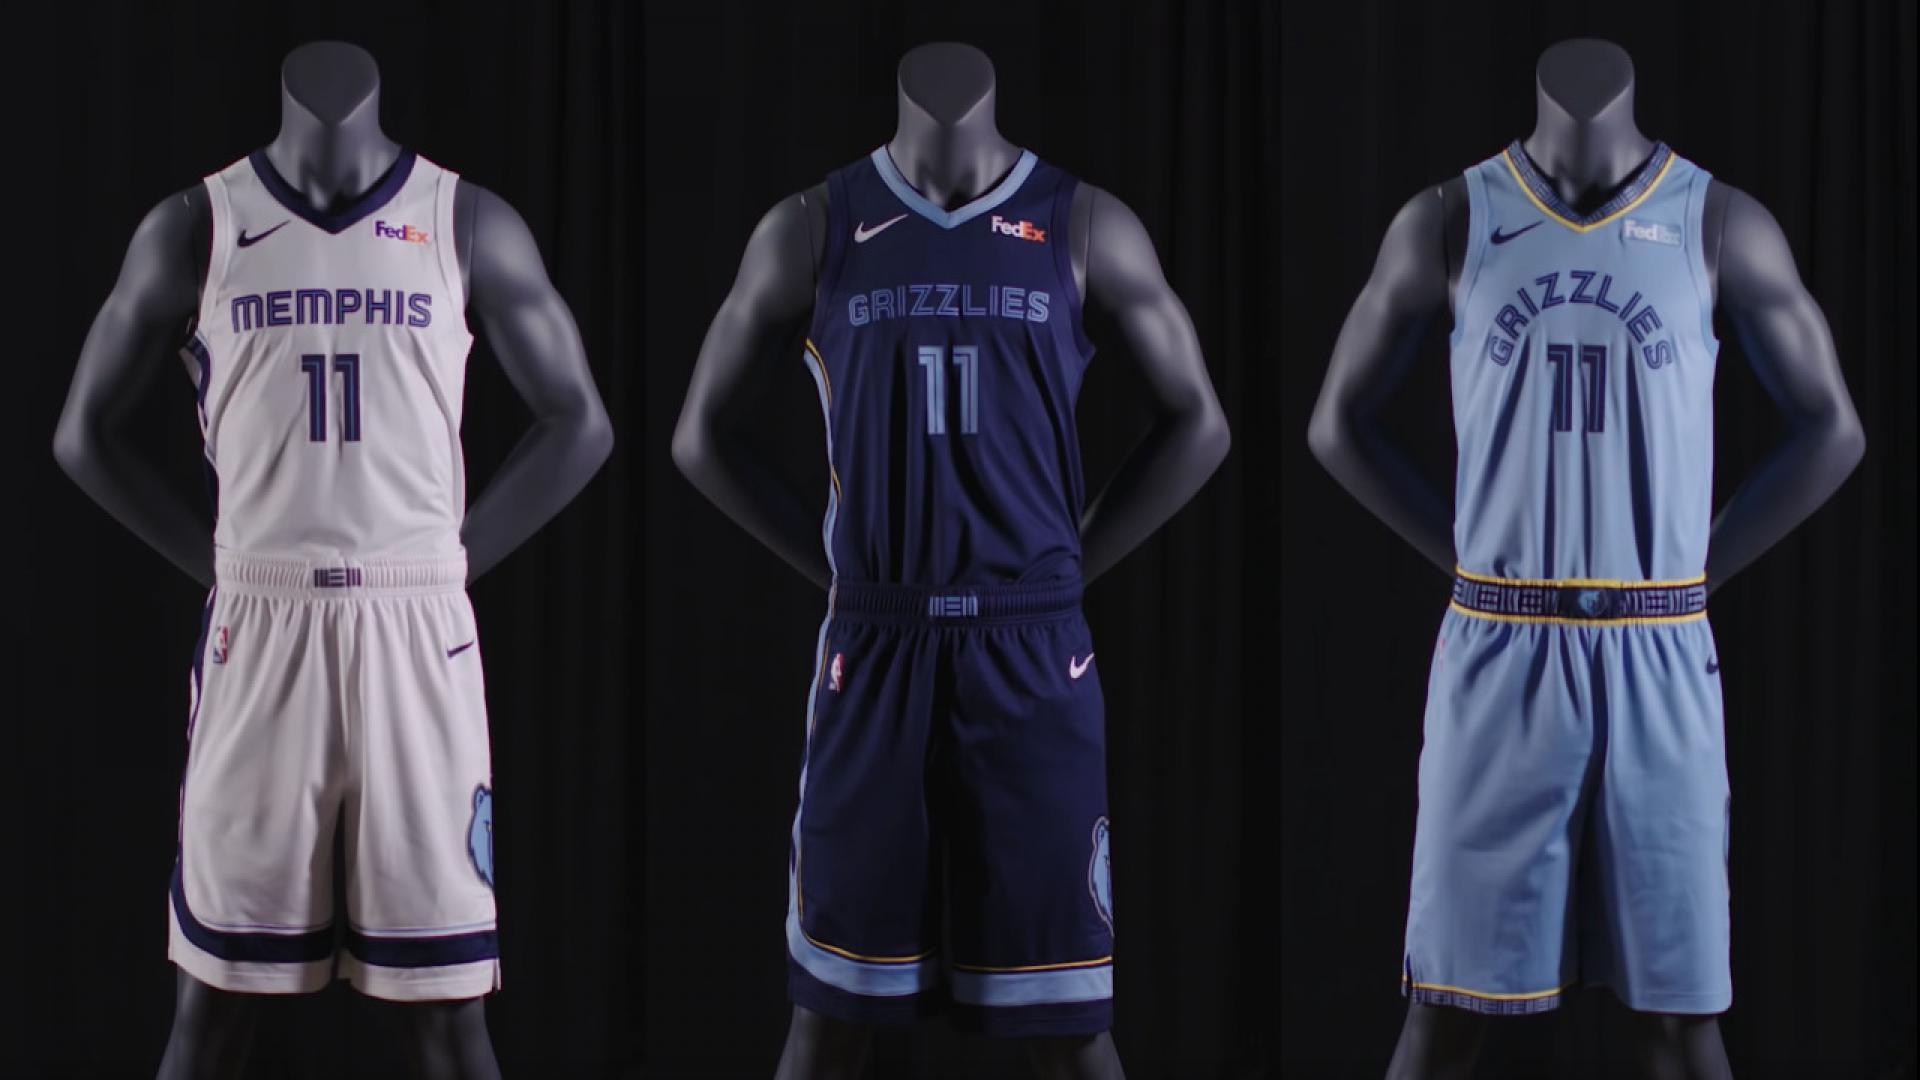 sale retailer 0b731 afb21 Memphis Grizzlies unveil new uniforms with FedEx as jersey ...